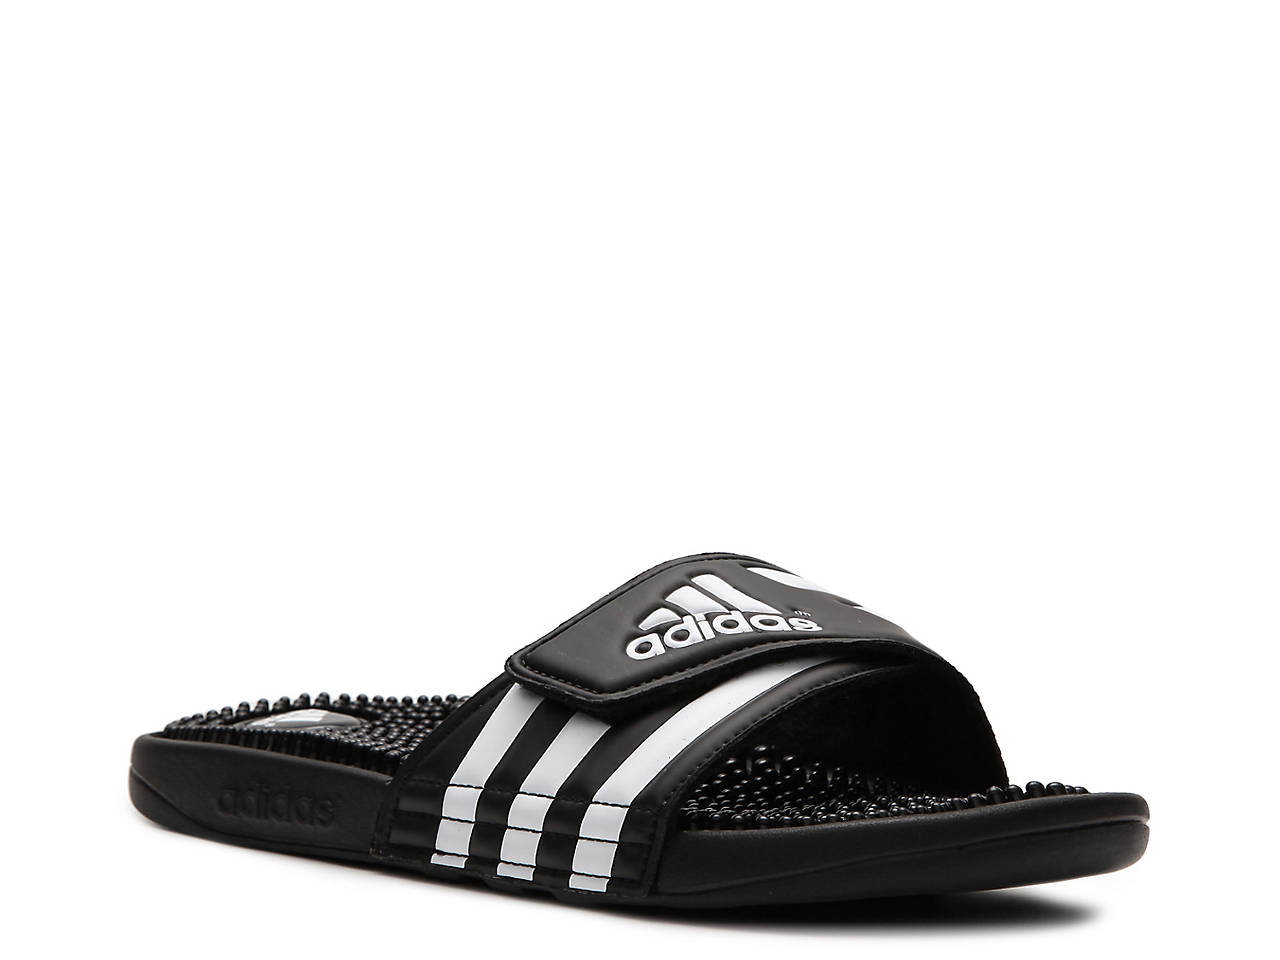 4a5279694 adidas Adissage Slide Sandal - Men s Men s Shoes